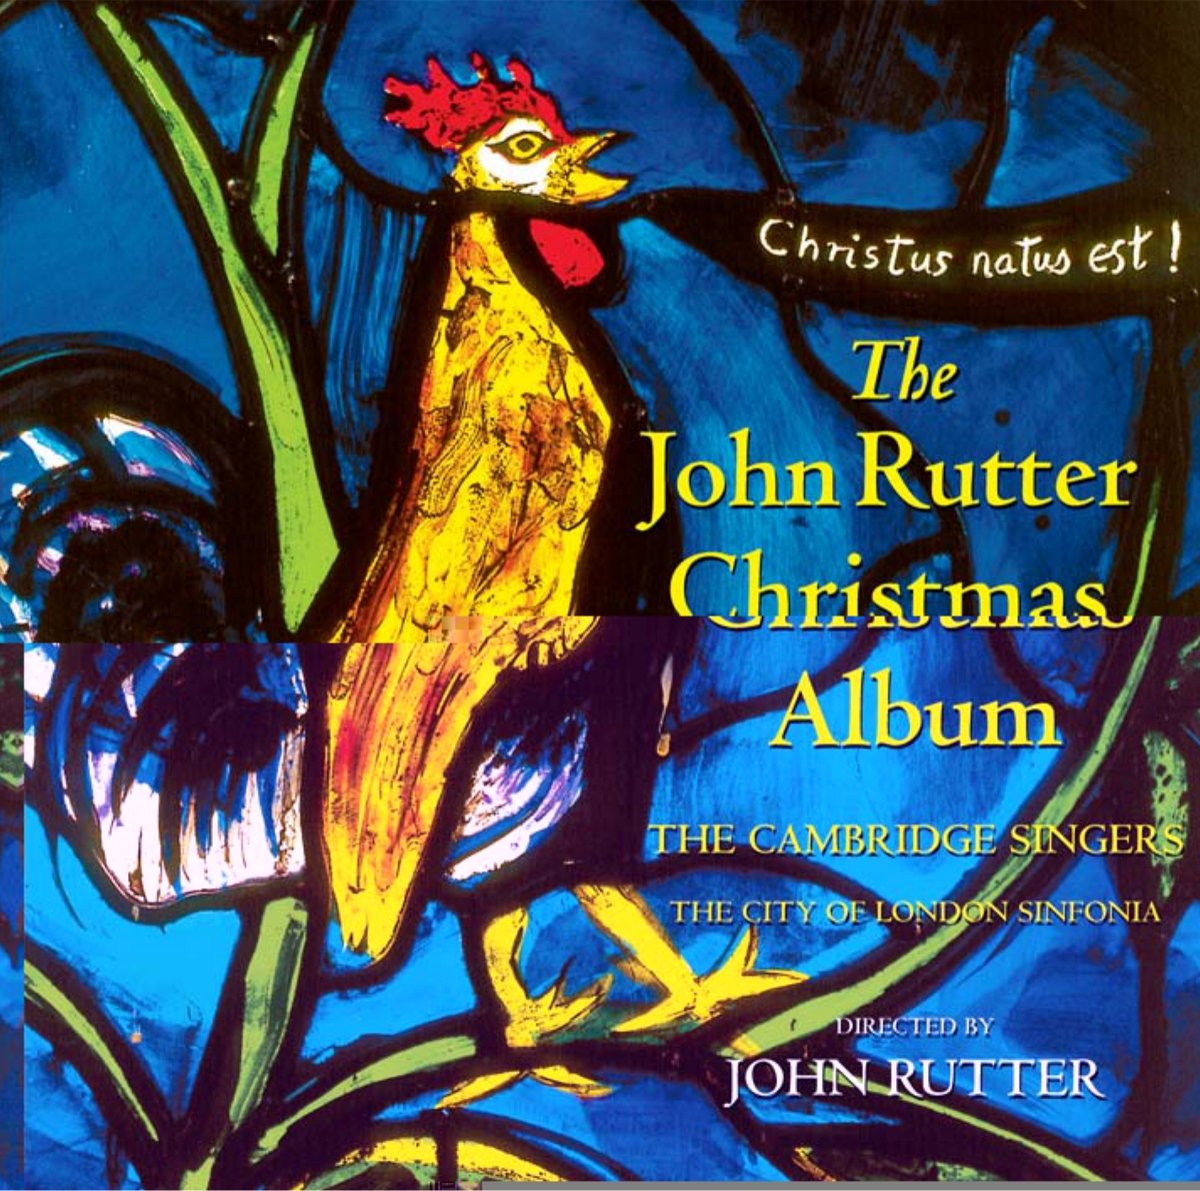 Christmas Traditional, John Rutter, Lowell Mason, Ruth Holton ...